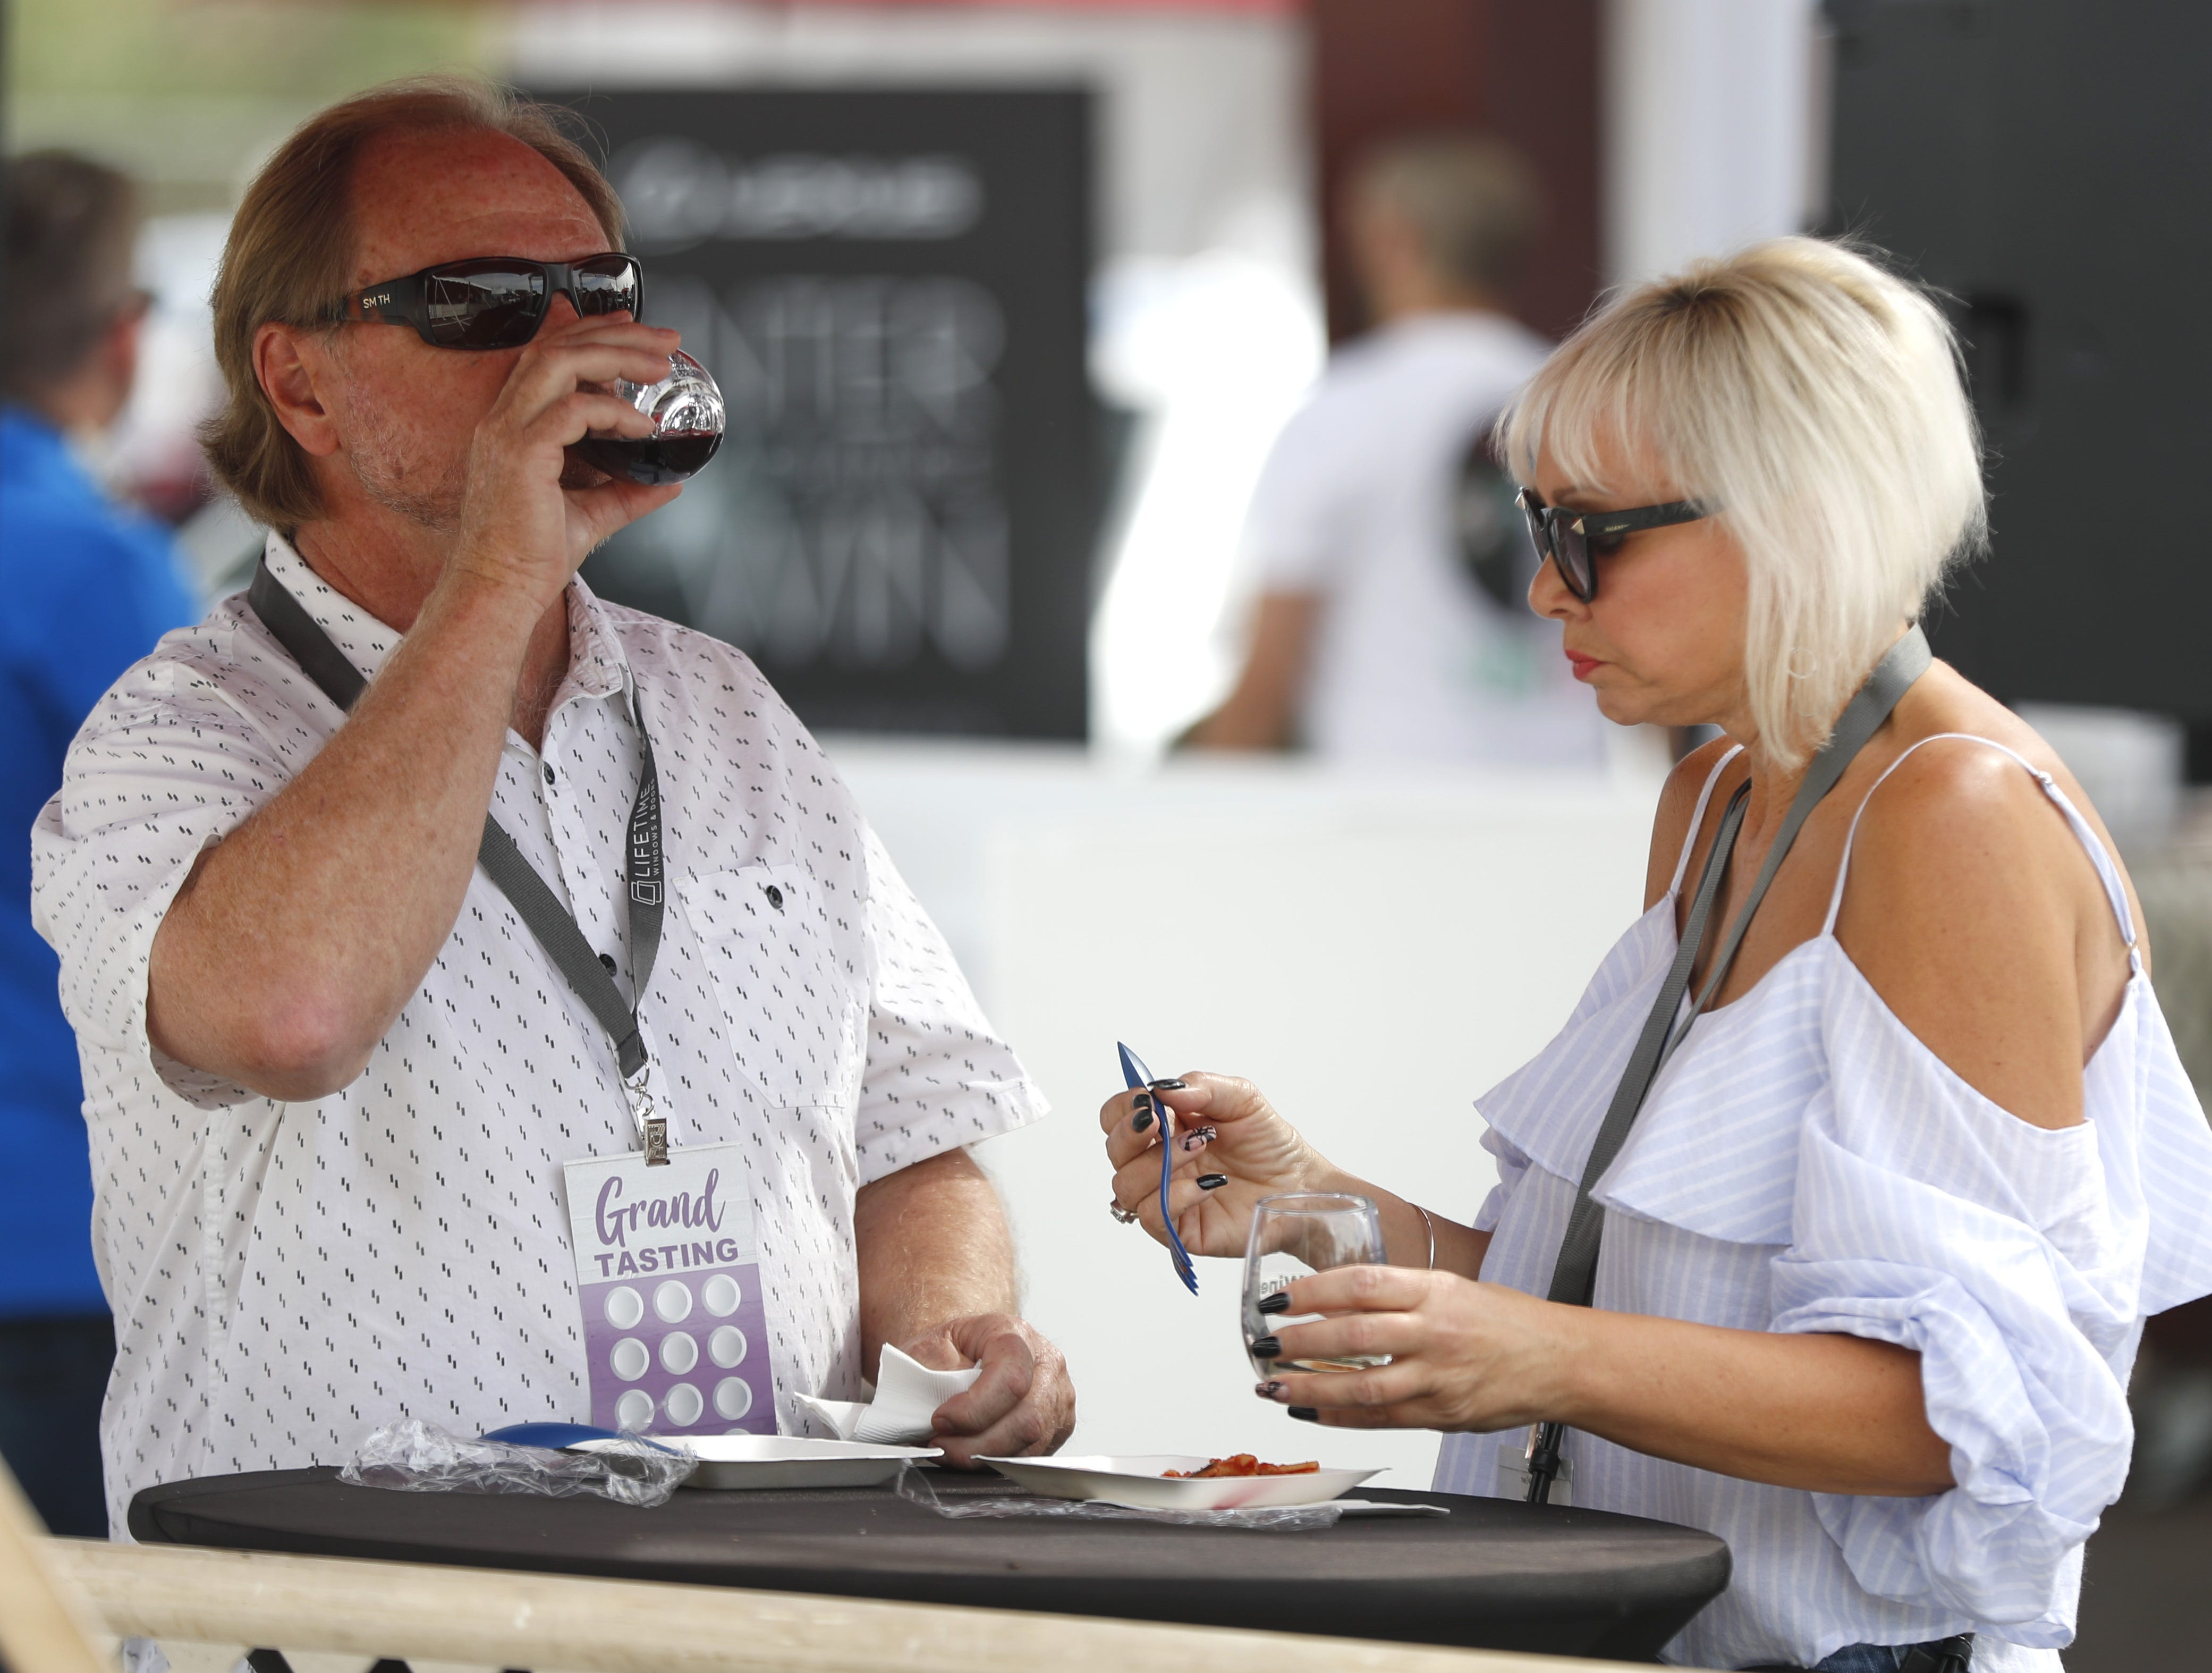 People take a moment to taste their wine and food during the azcentral Wine & Food Experience at WestWorld of Scottsdale, Ariz. on Nov. 4, 2018.